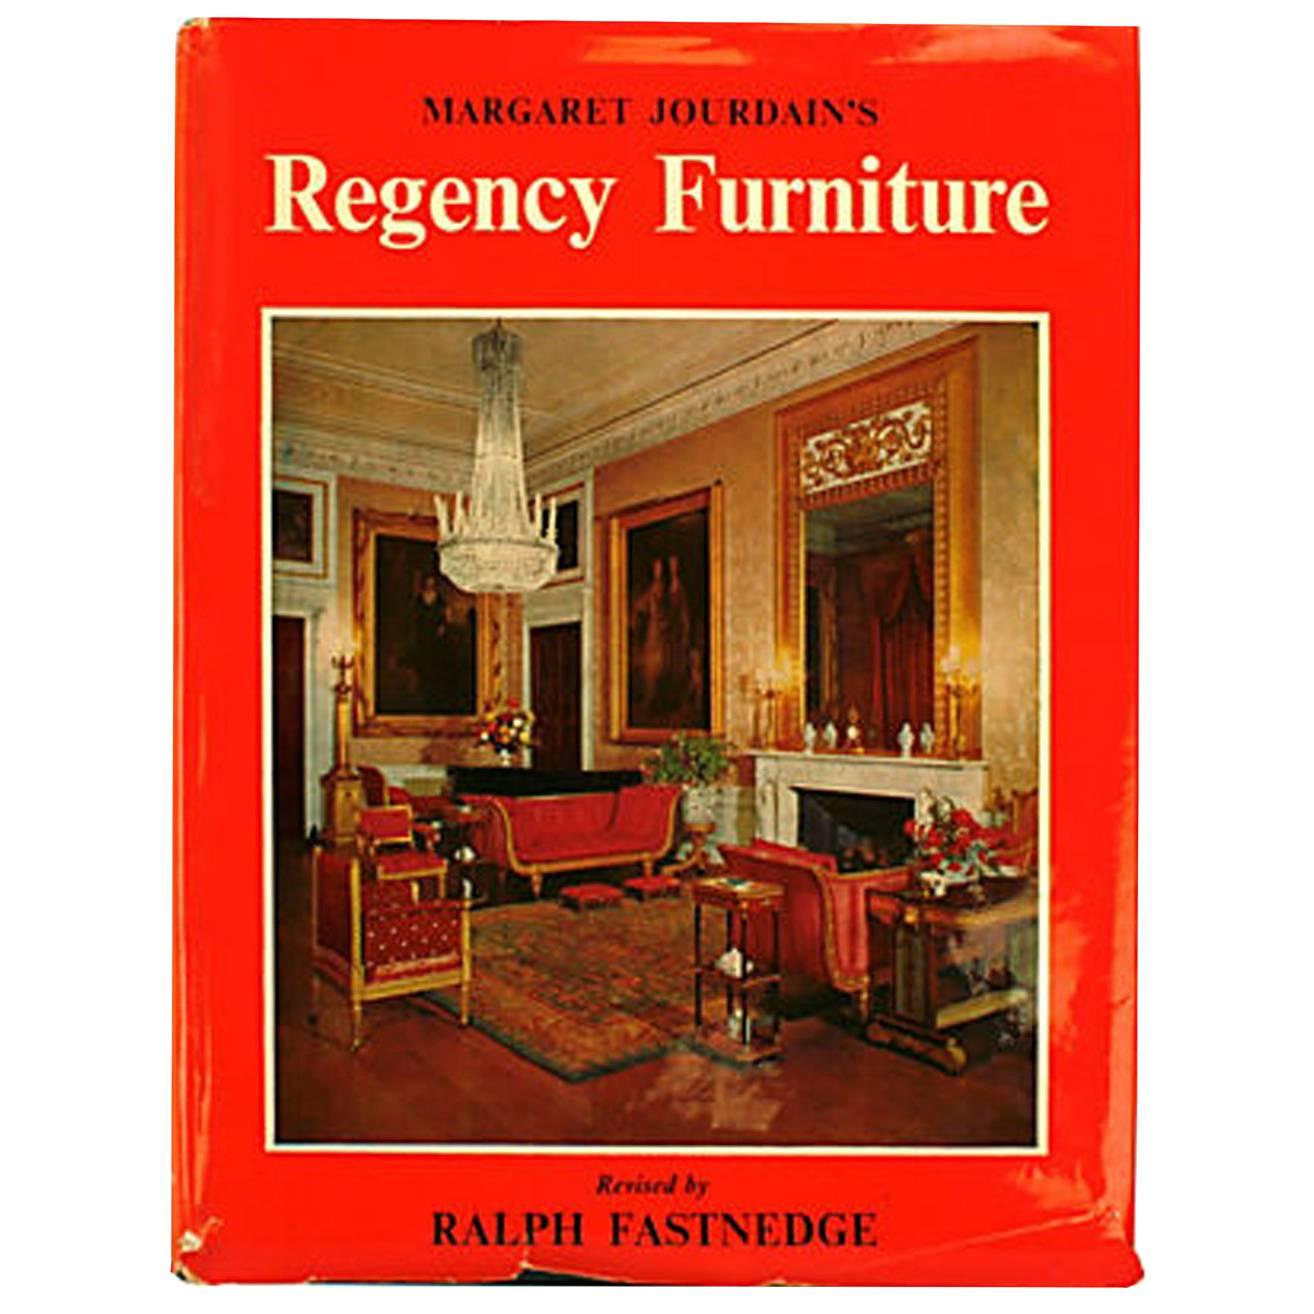 Regency Furniture 1795-1820 by Margaret Jourdain, 1st Ed